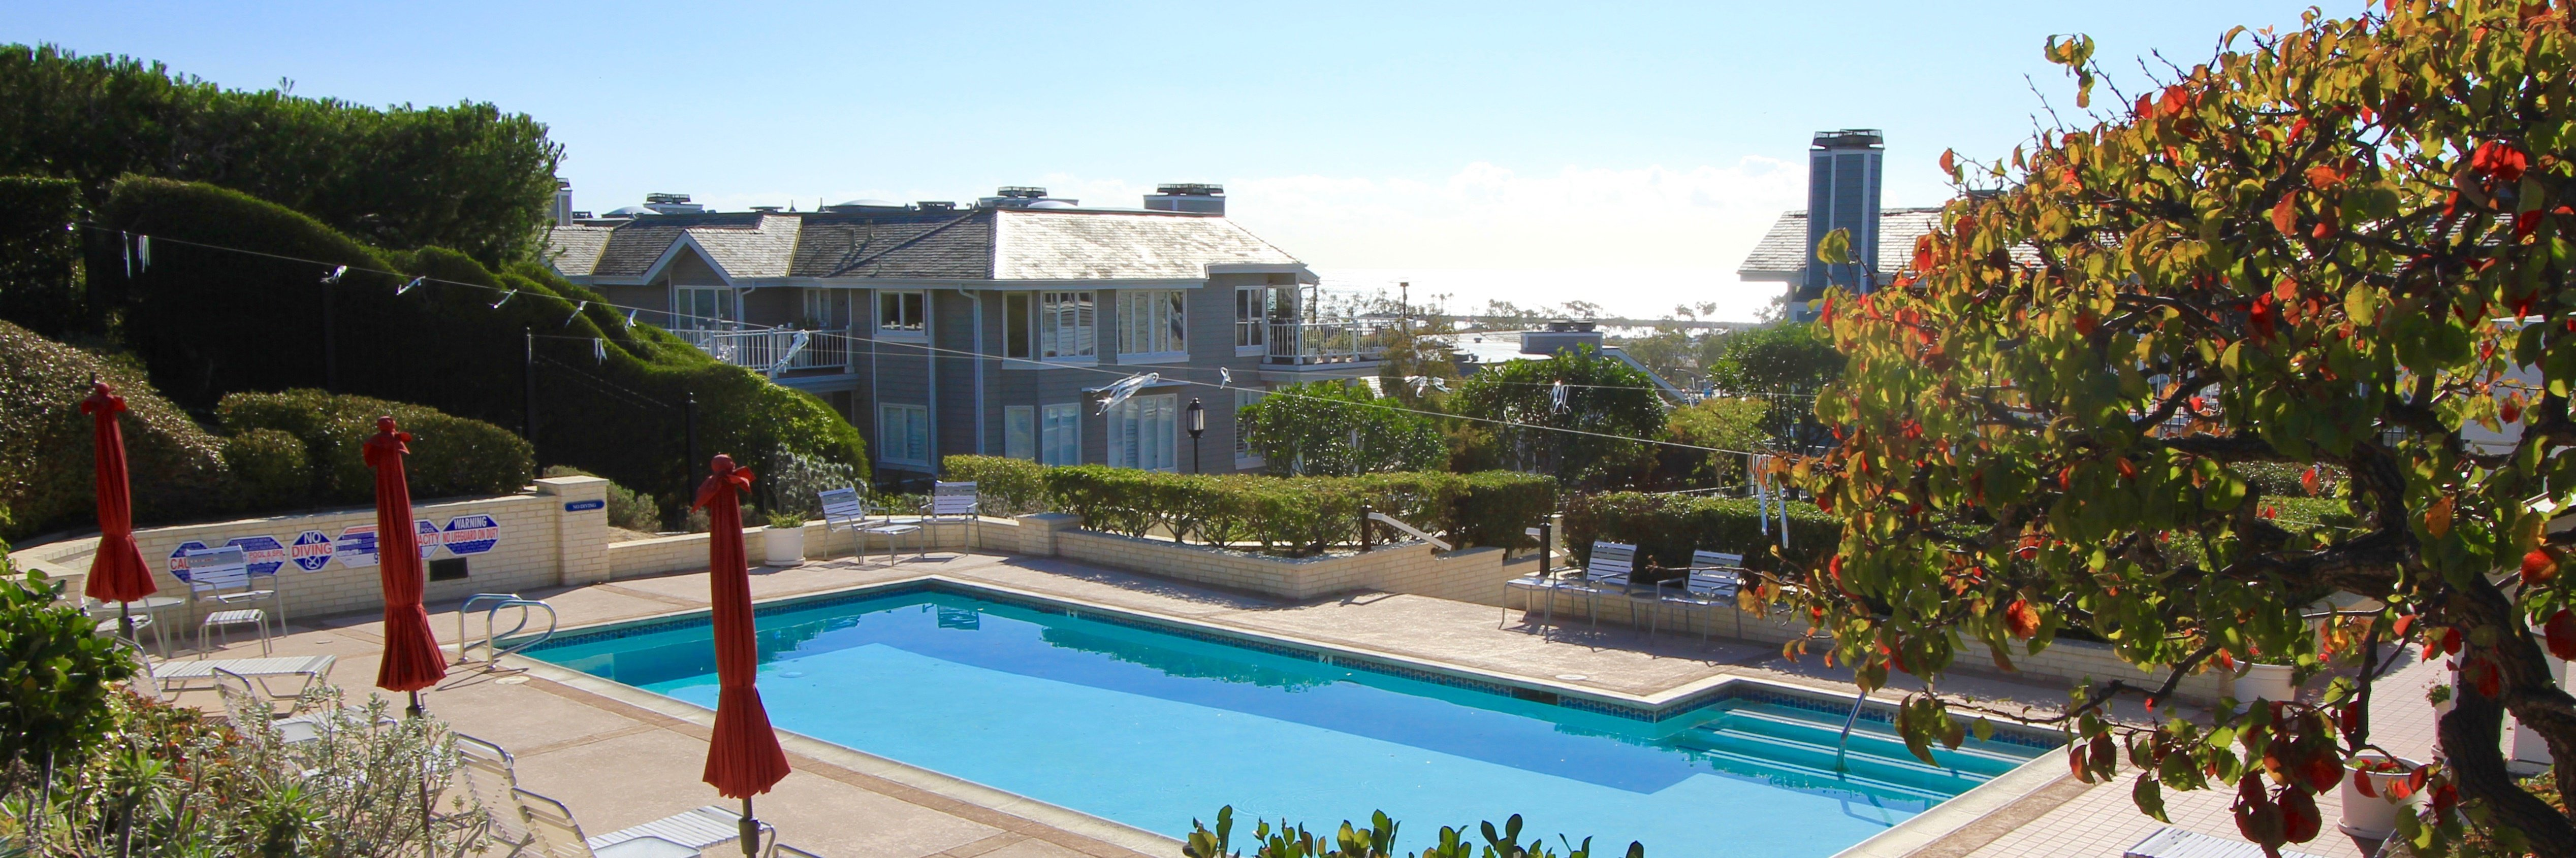 Lantern Bay Villas is a gated community located in Dana Point Ca